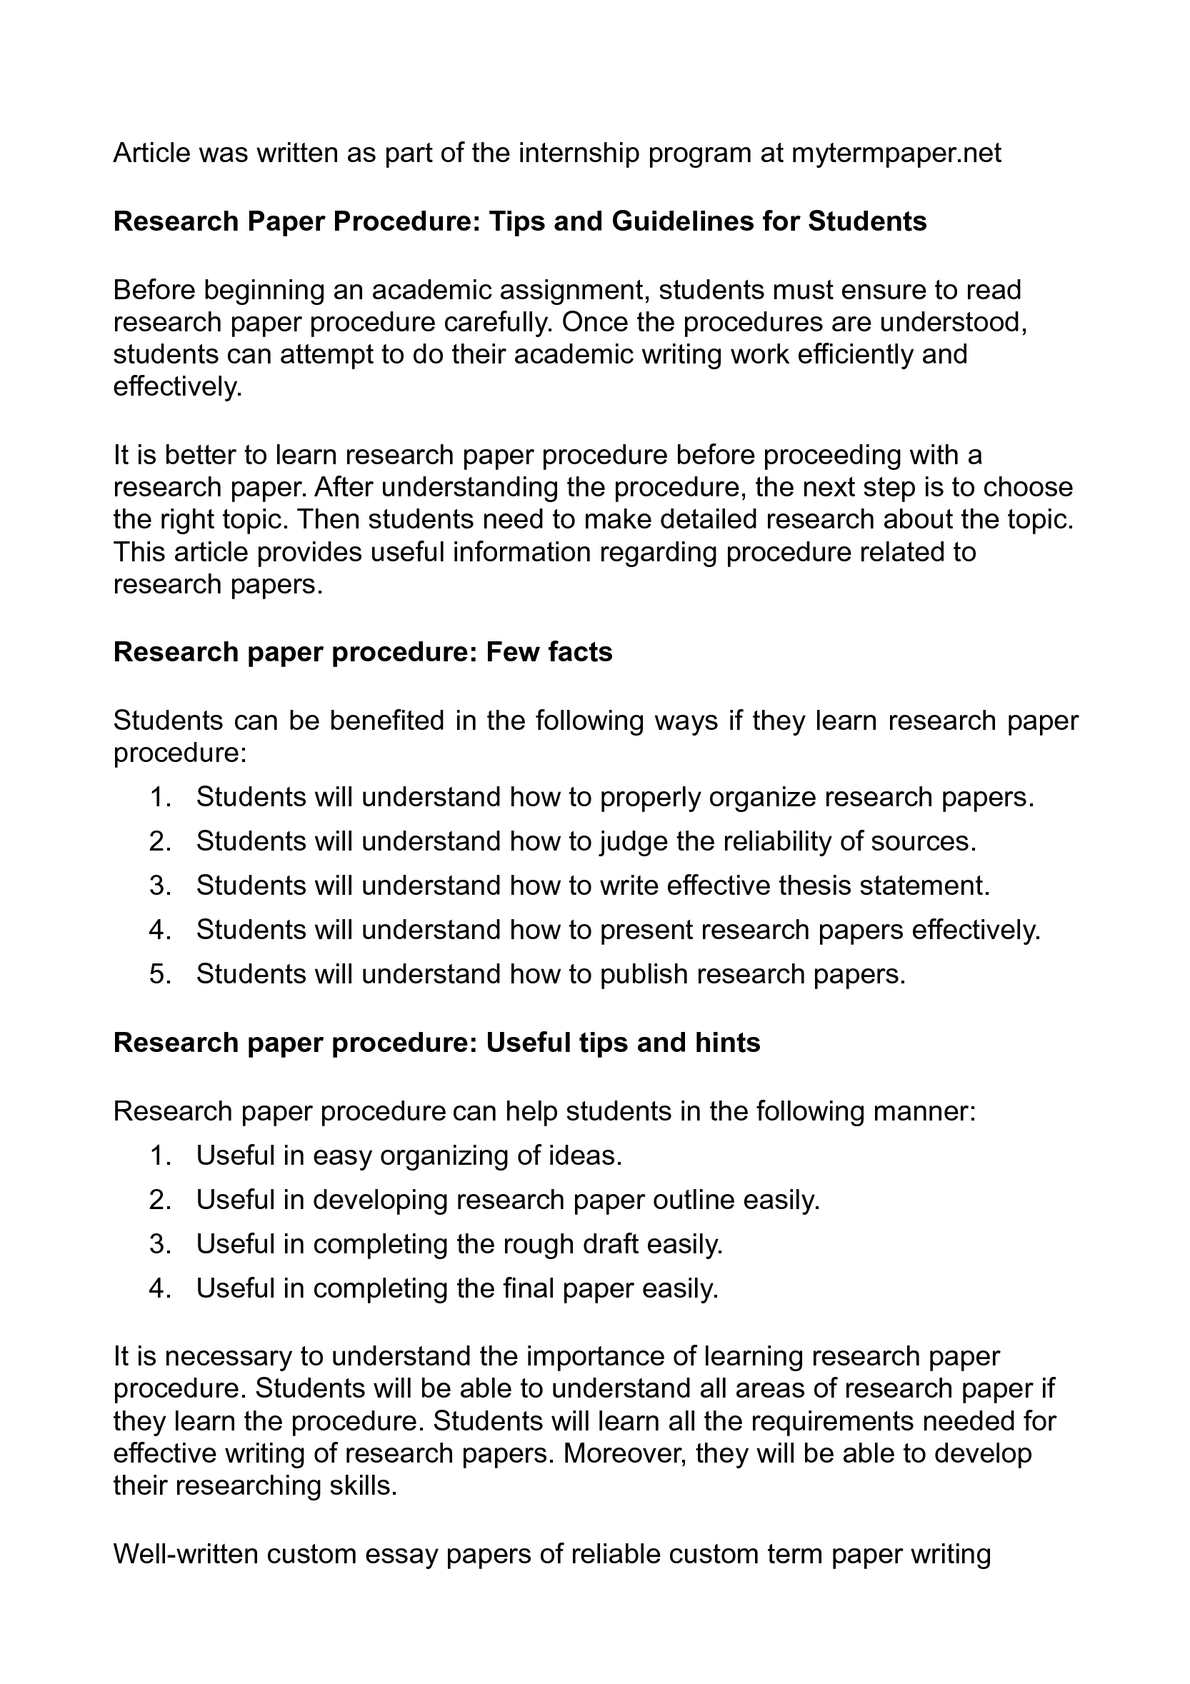 018 How To Do Research Paper Marvelous Review Write A Outline Owl Purdue Citing Sources Full